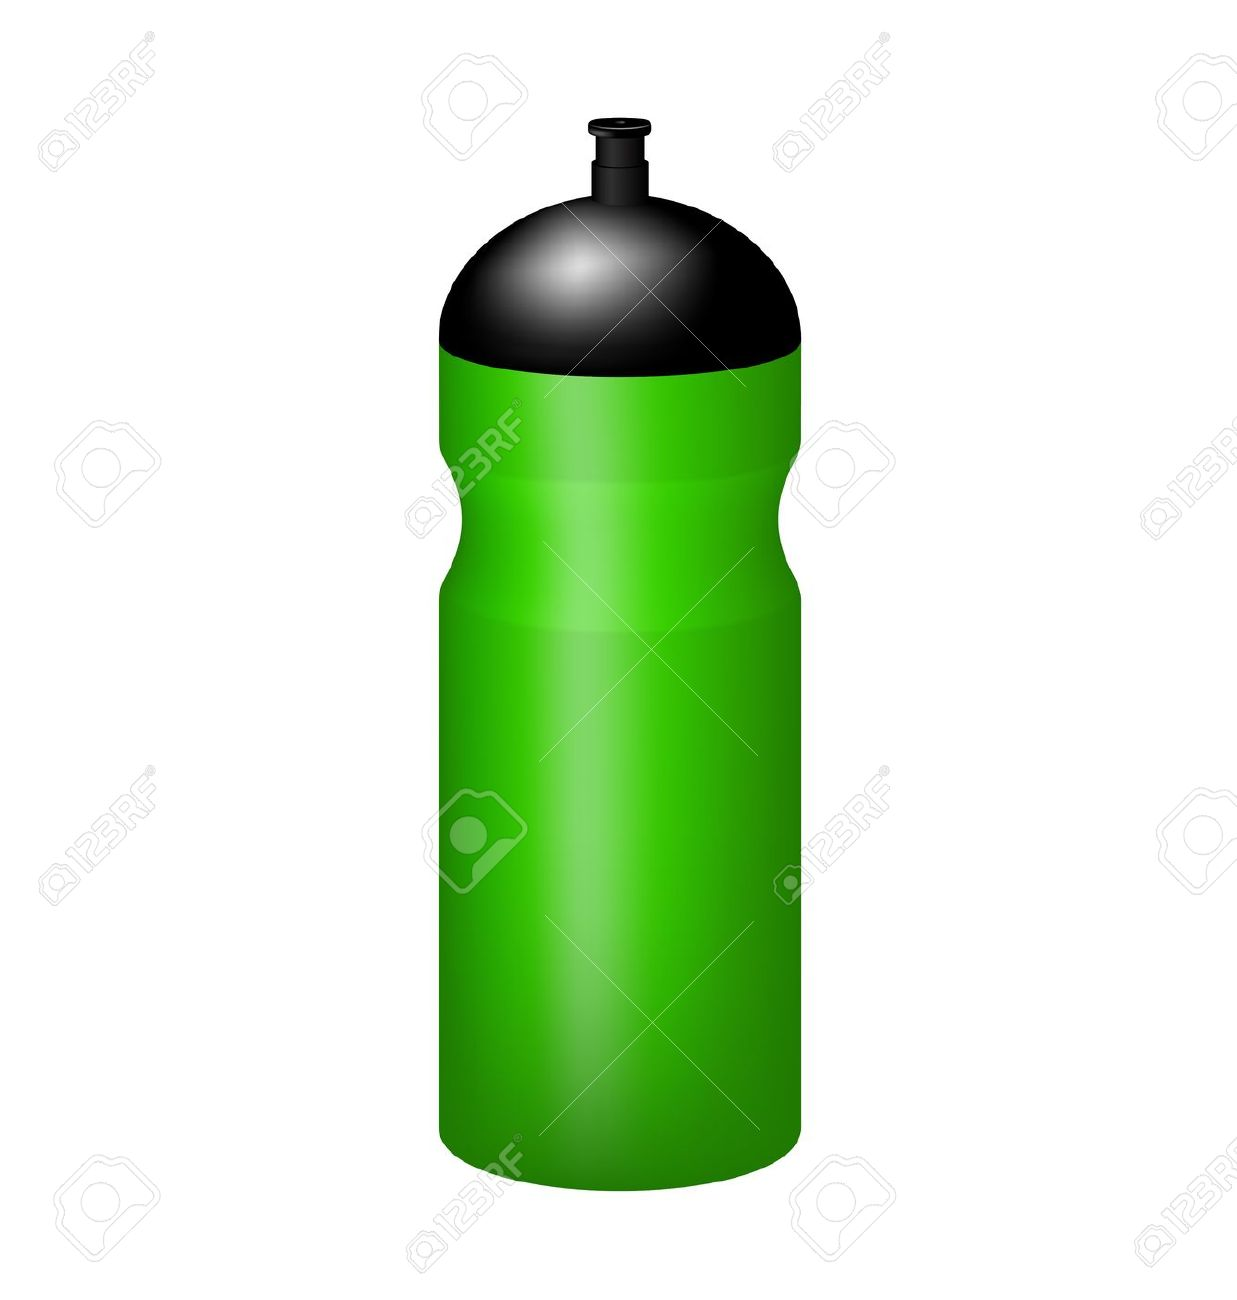 Water Bottle Graphic: Bottled Water Images Clipart